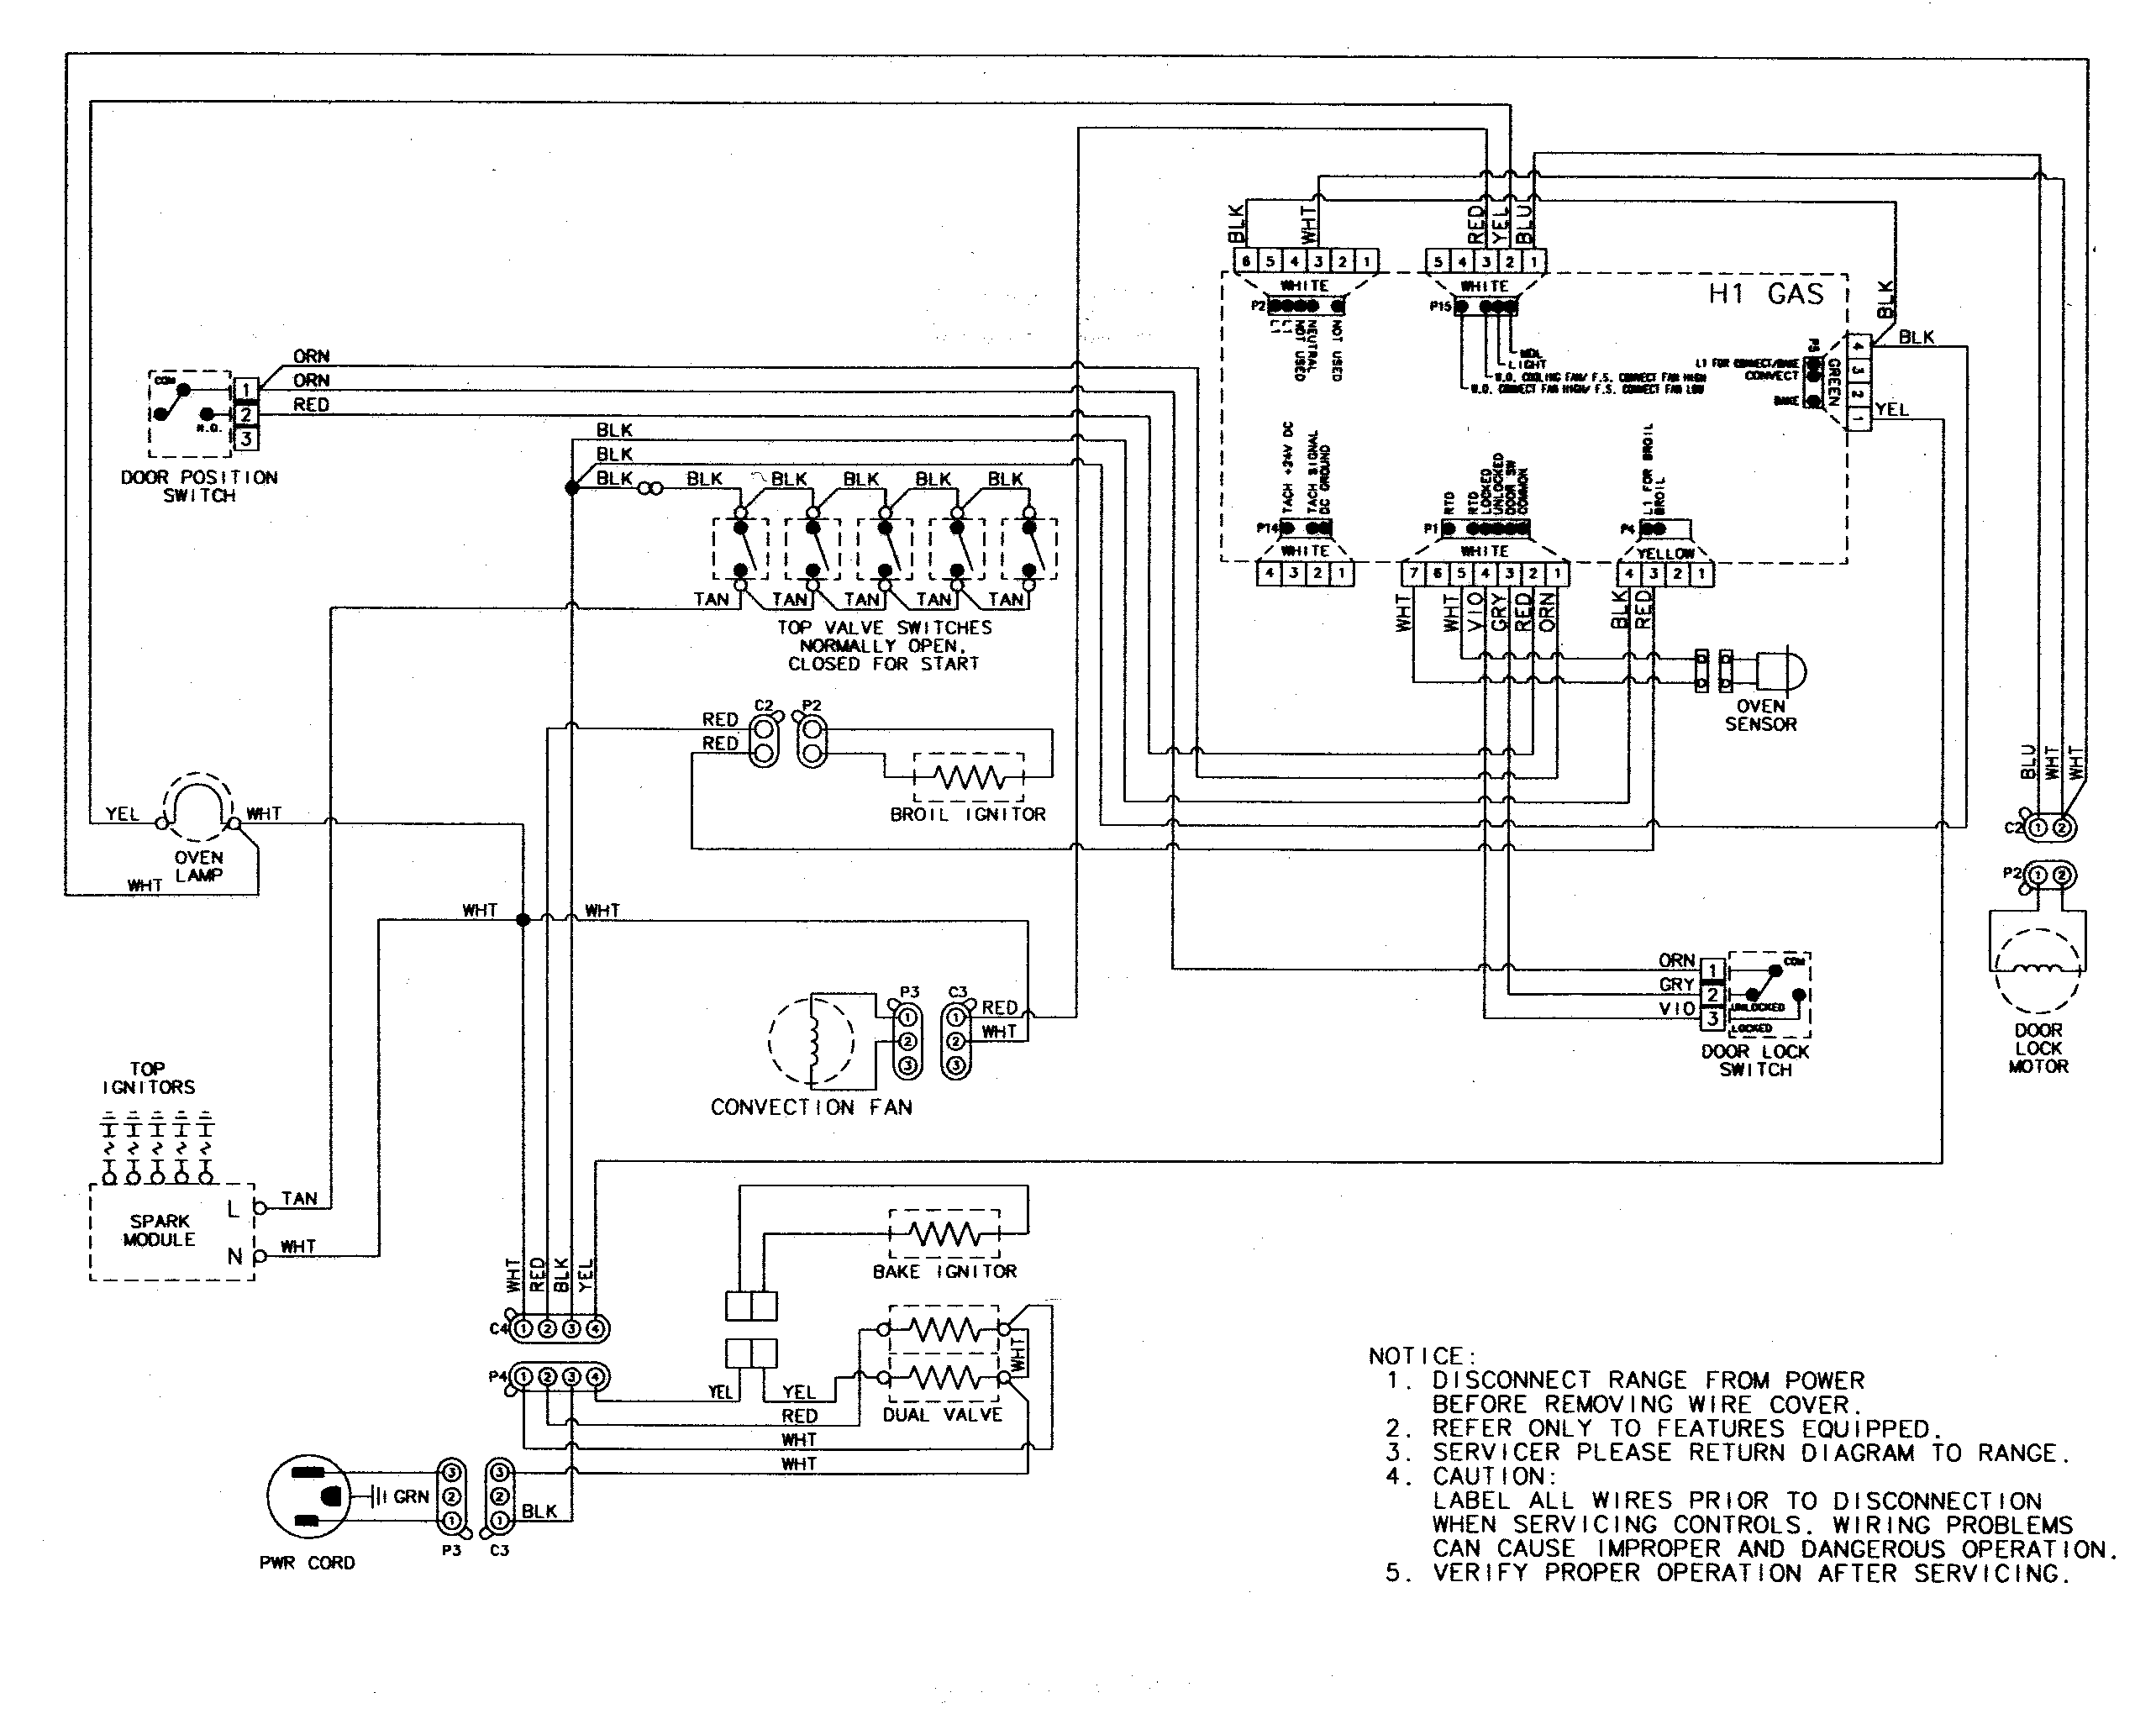 F3F5 Amana Air Conditioner Wiring Diagram | Wiring LibraryWiring Library